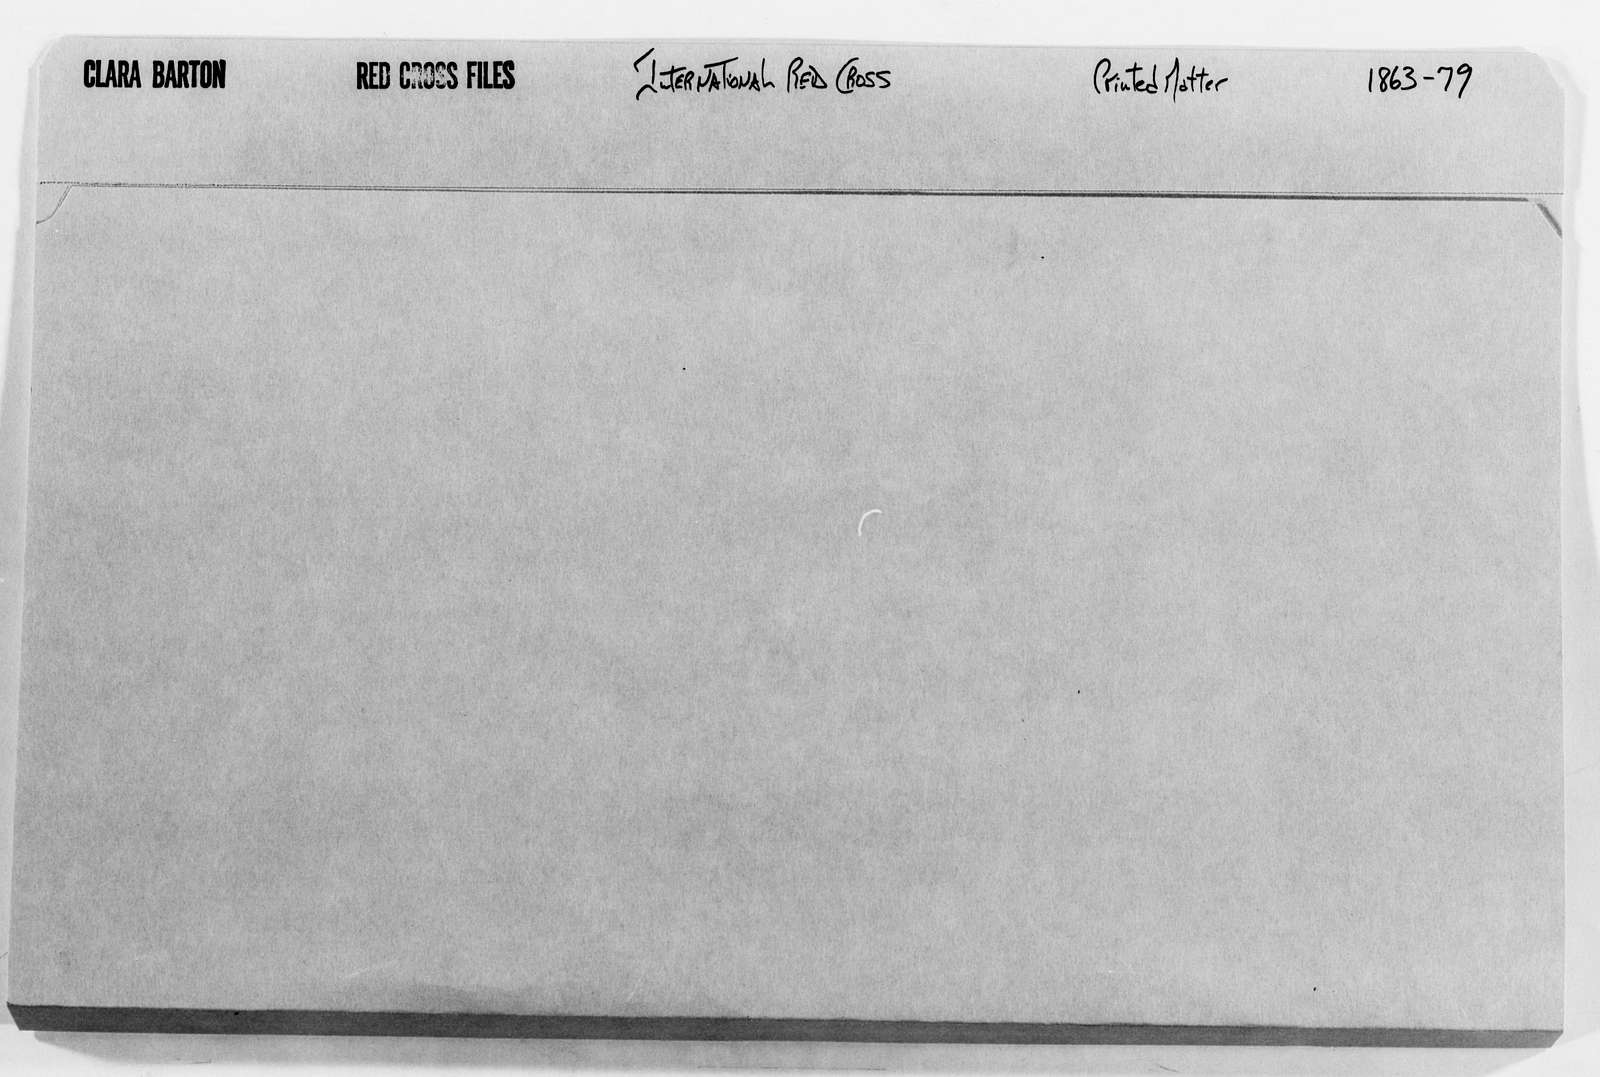 Clara Barton Papers: Red Cross File, 1863-1957; International Committee of the Red Cross, 1863-1919; Printed matter; 1863-1895